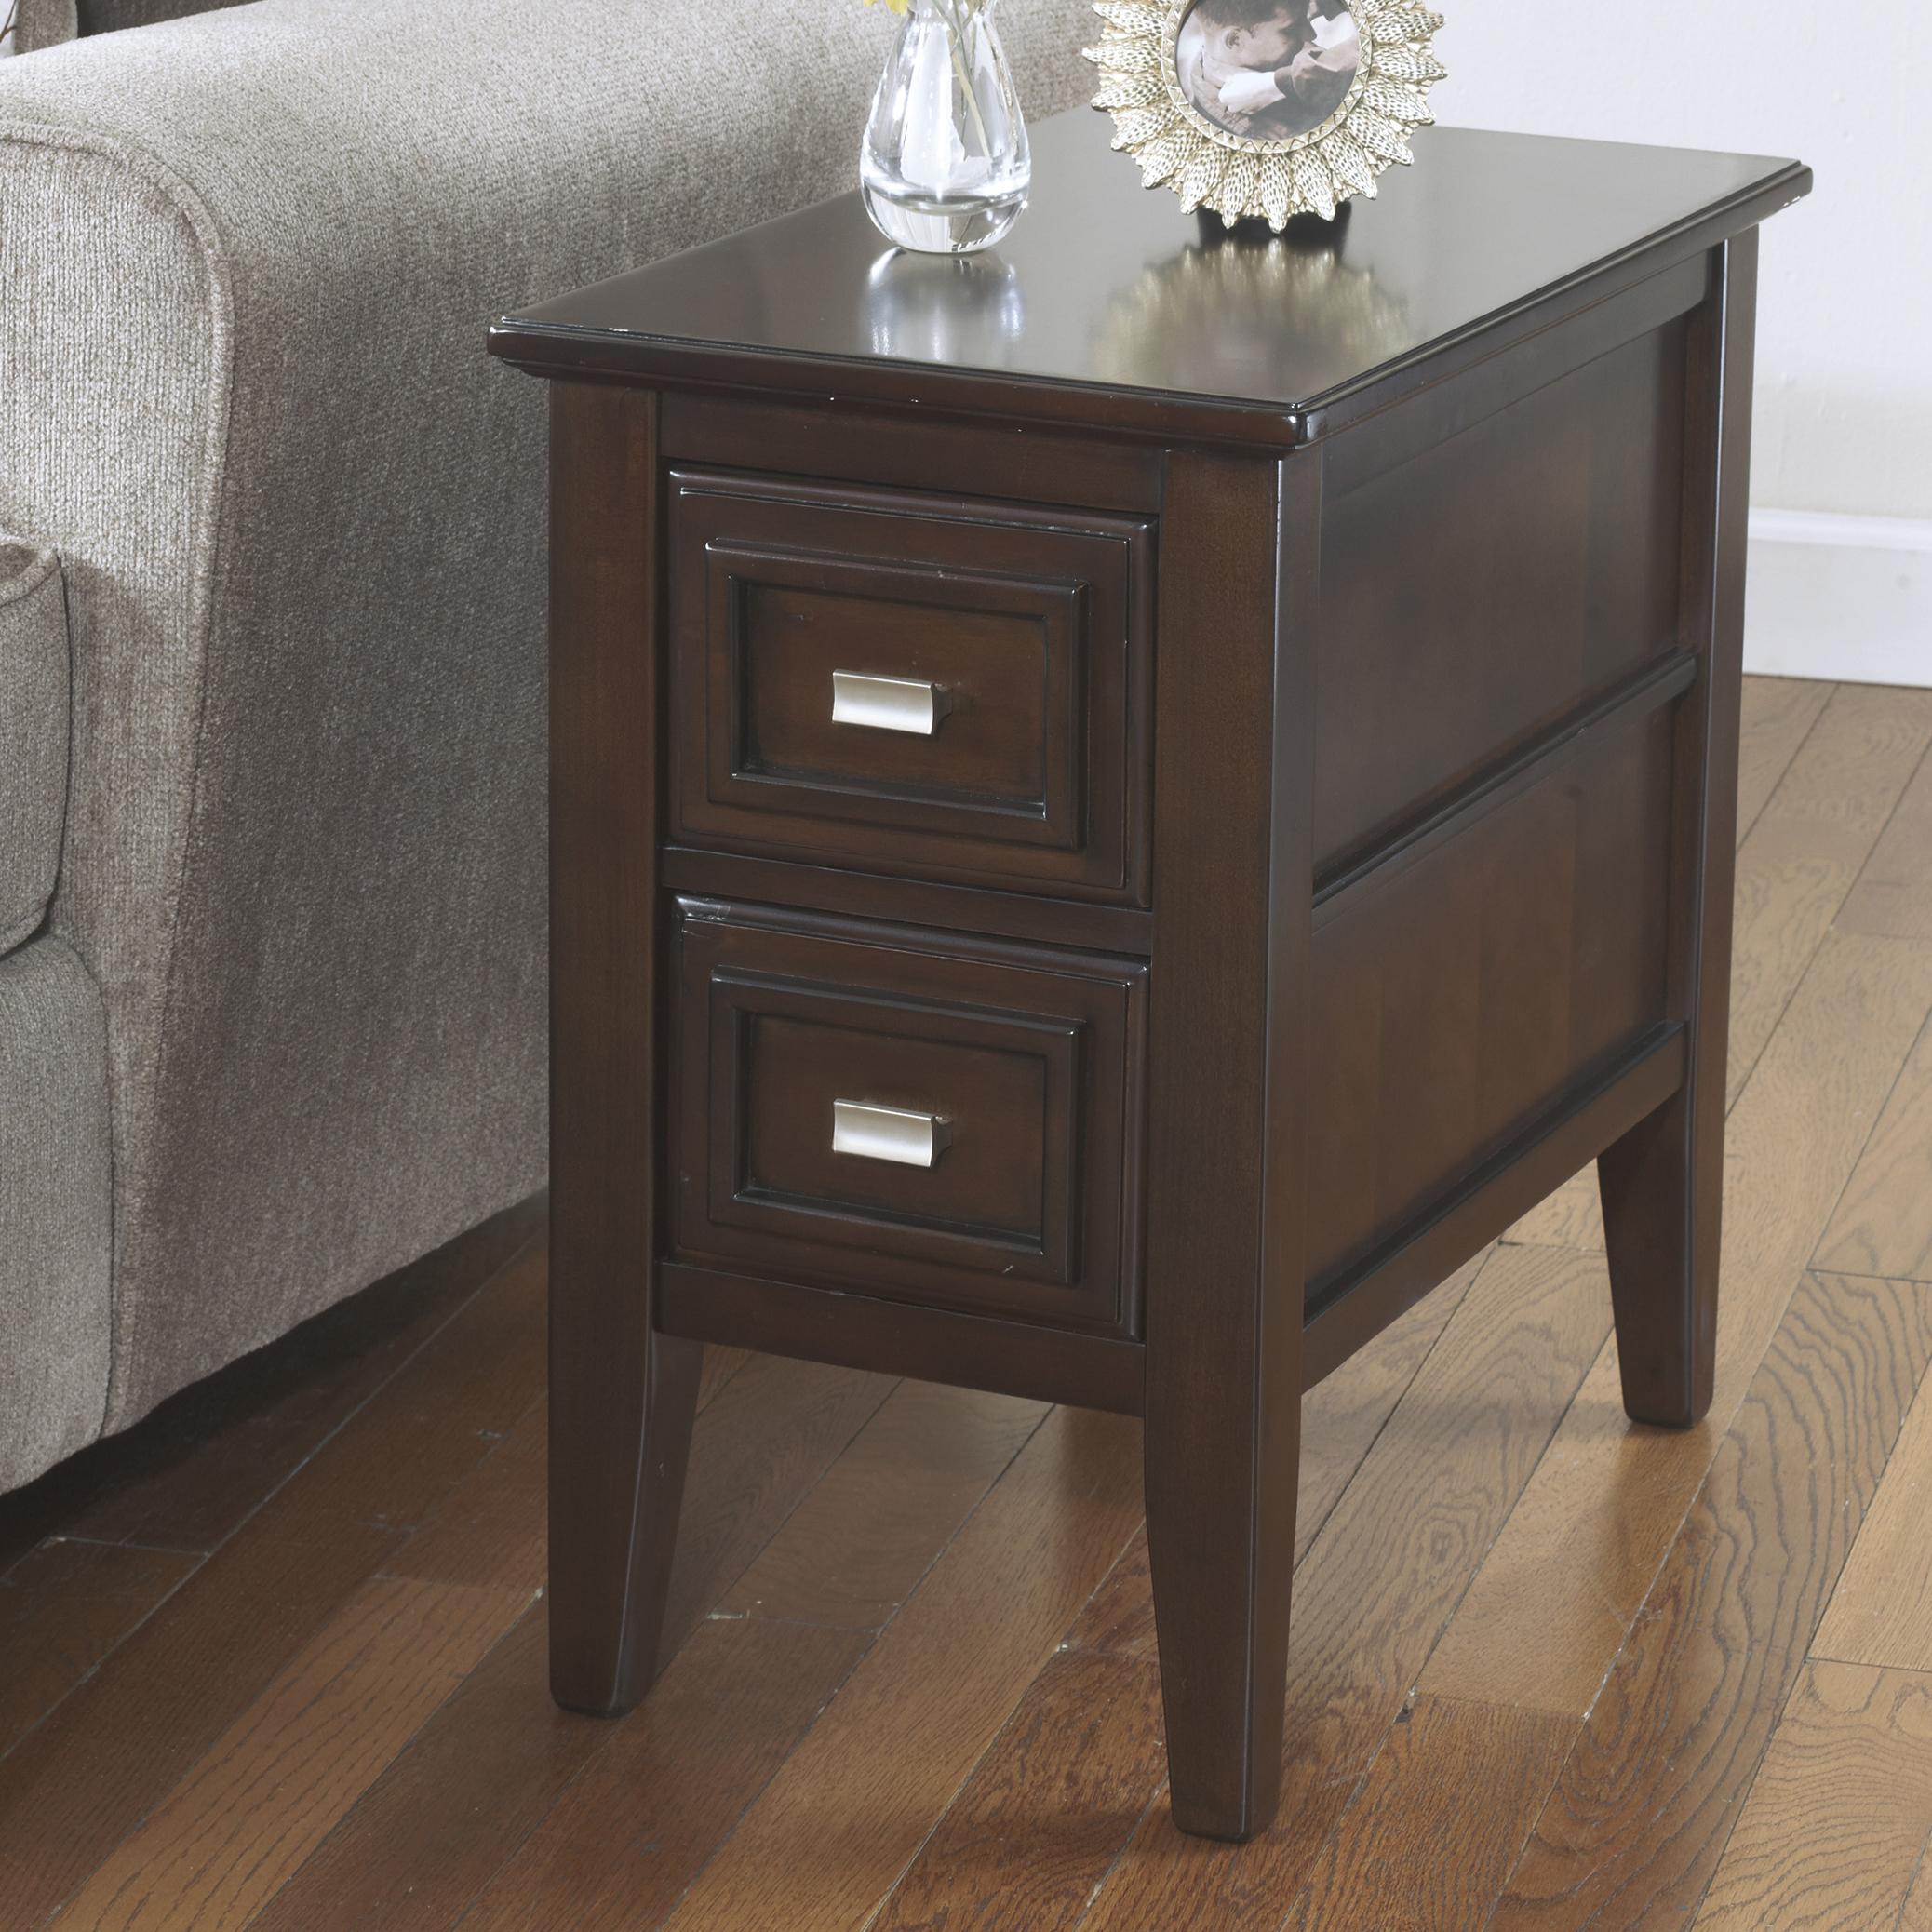 Signature Design by Ashley Larimer Chairside End Table - Item Number: T654-7